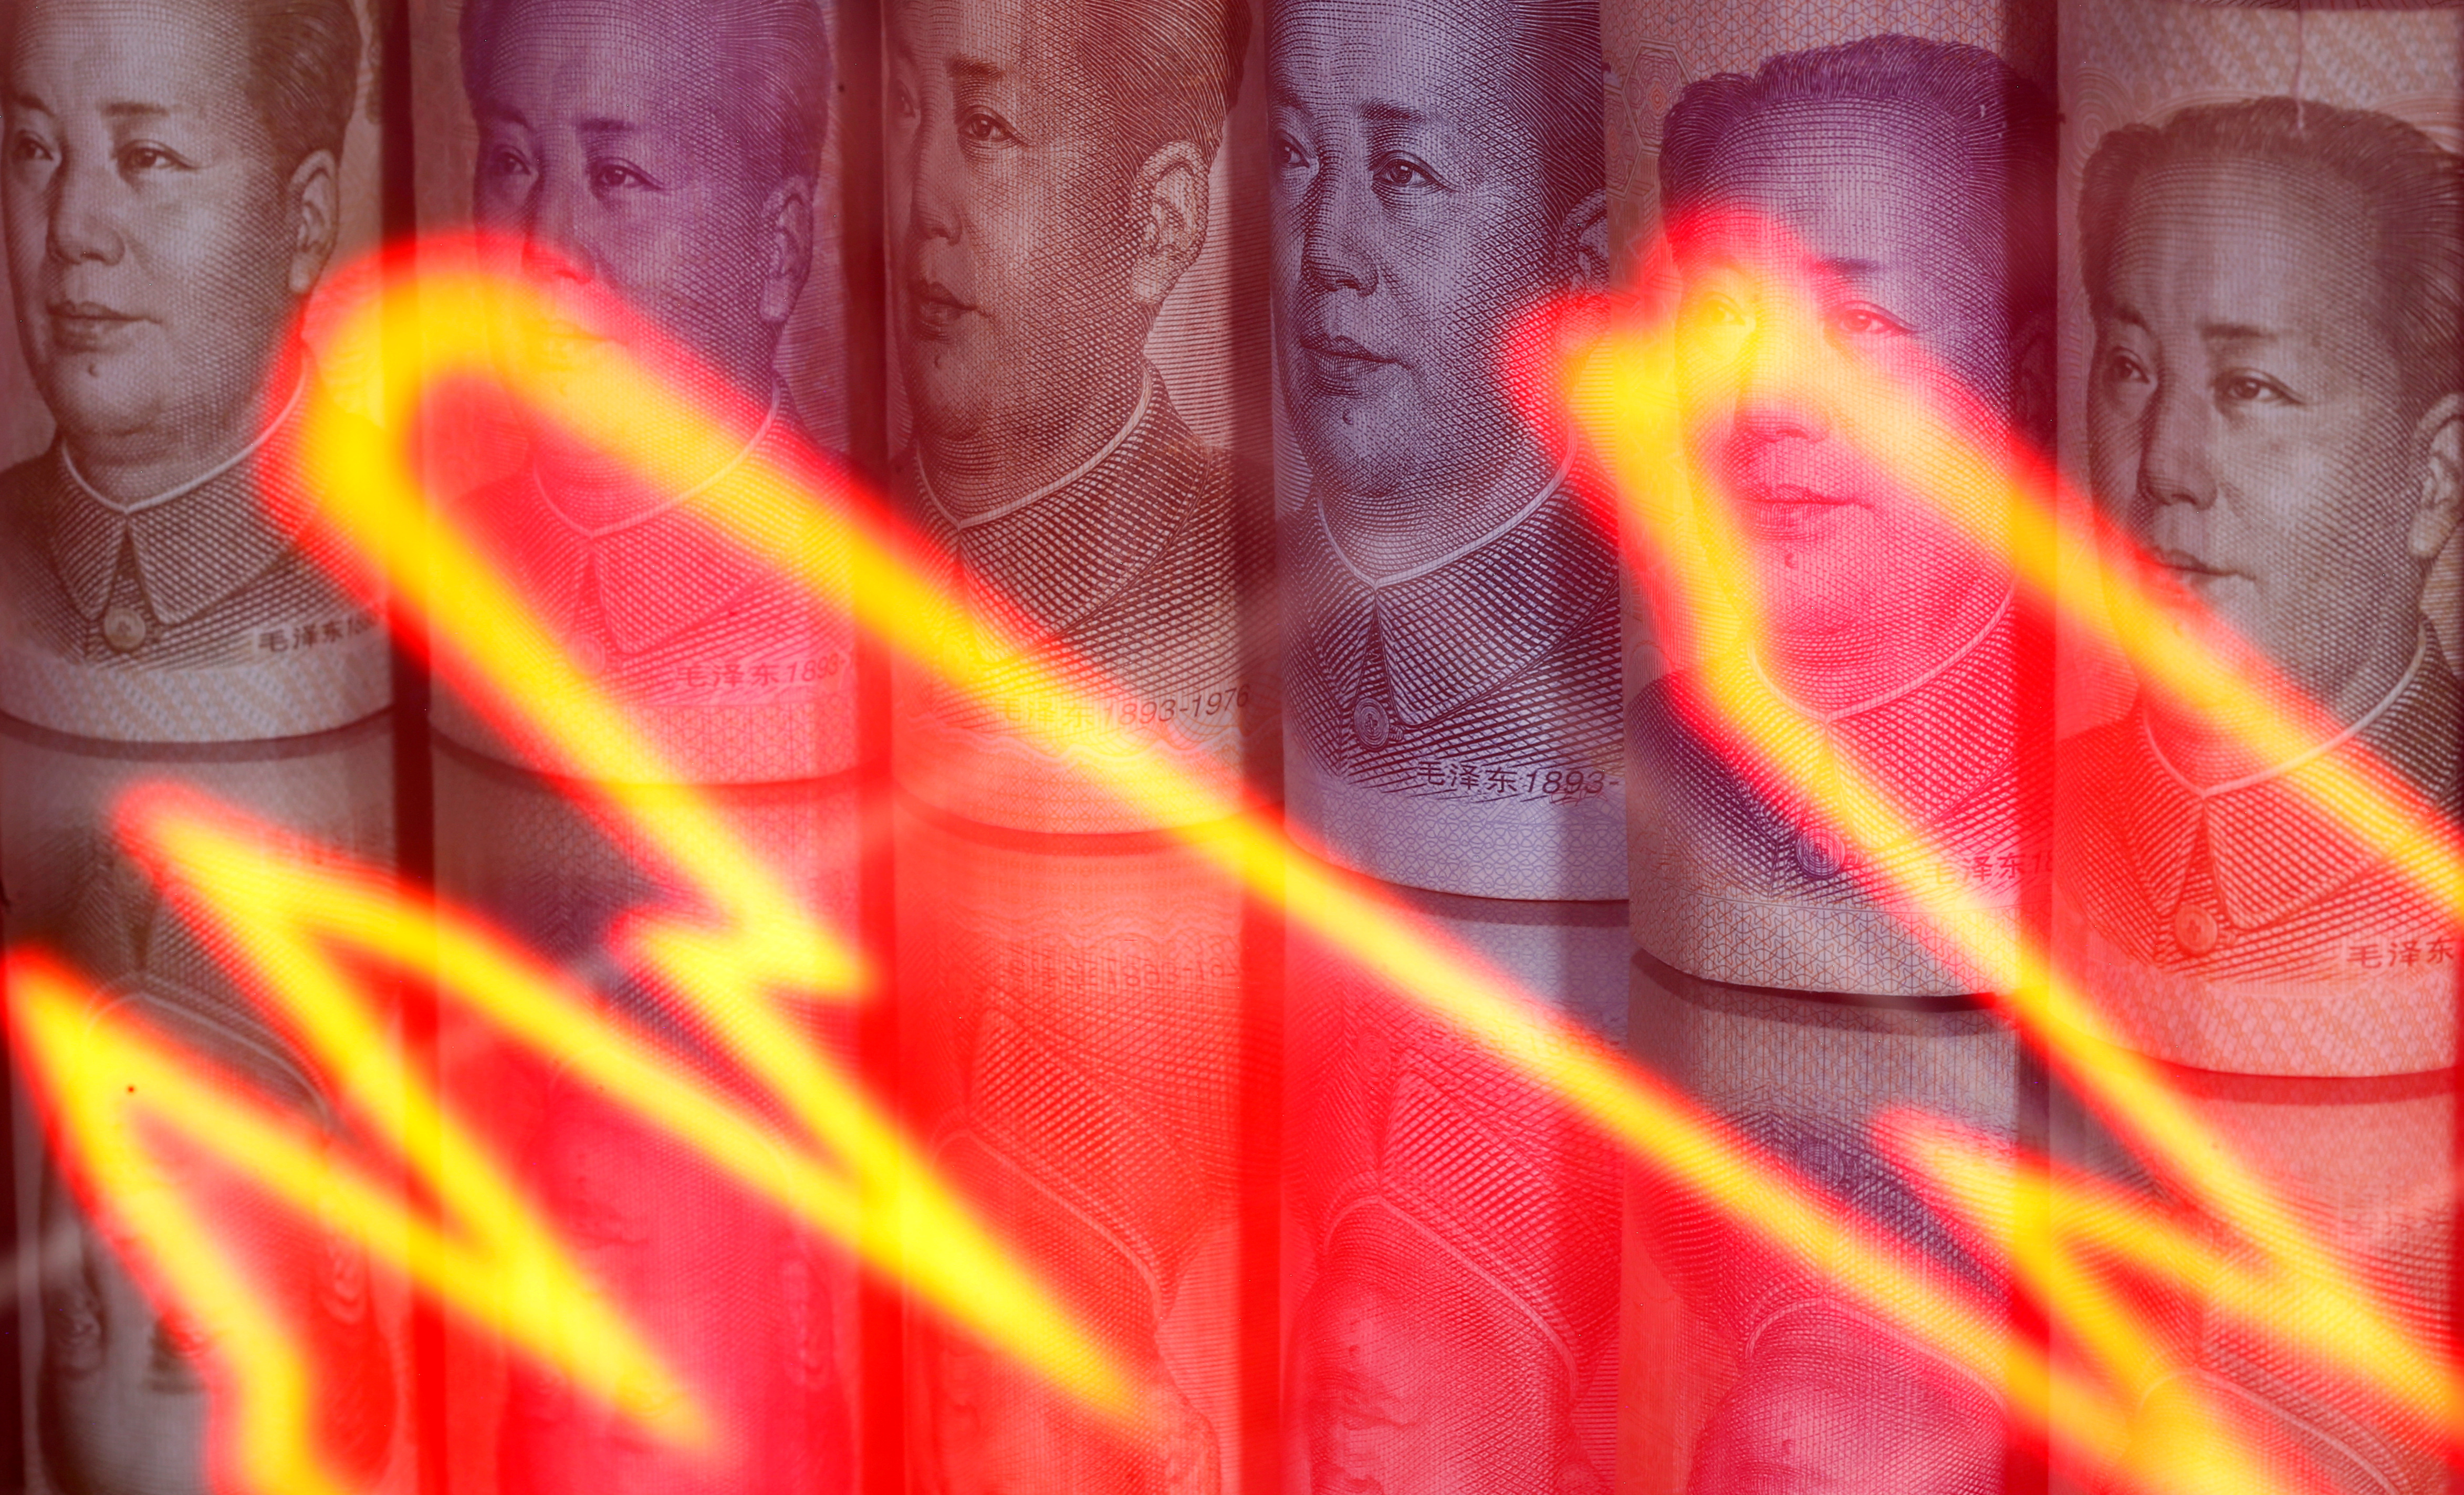 Chinese yuan banknotes are seen behind illuminated stock graph in this illustration taken February 10, 2020. REUTERS/Dado Ruvic/Illustration/File Photo